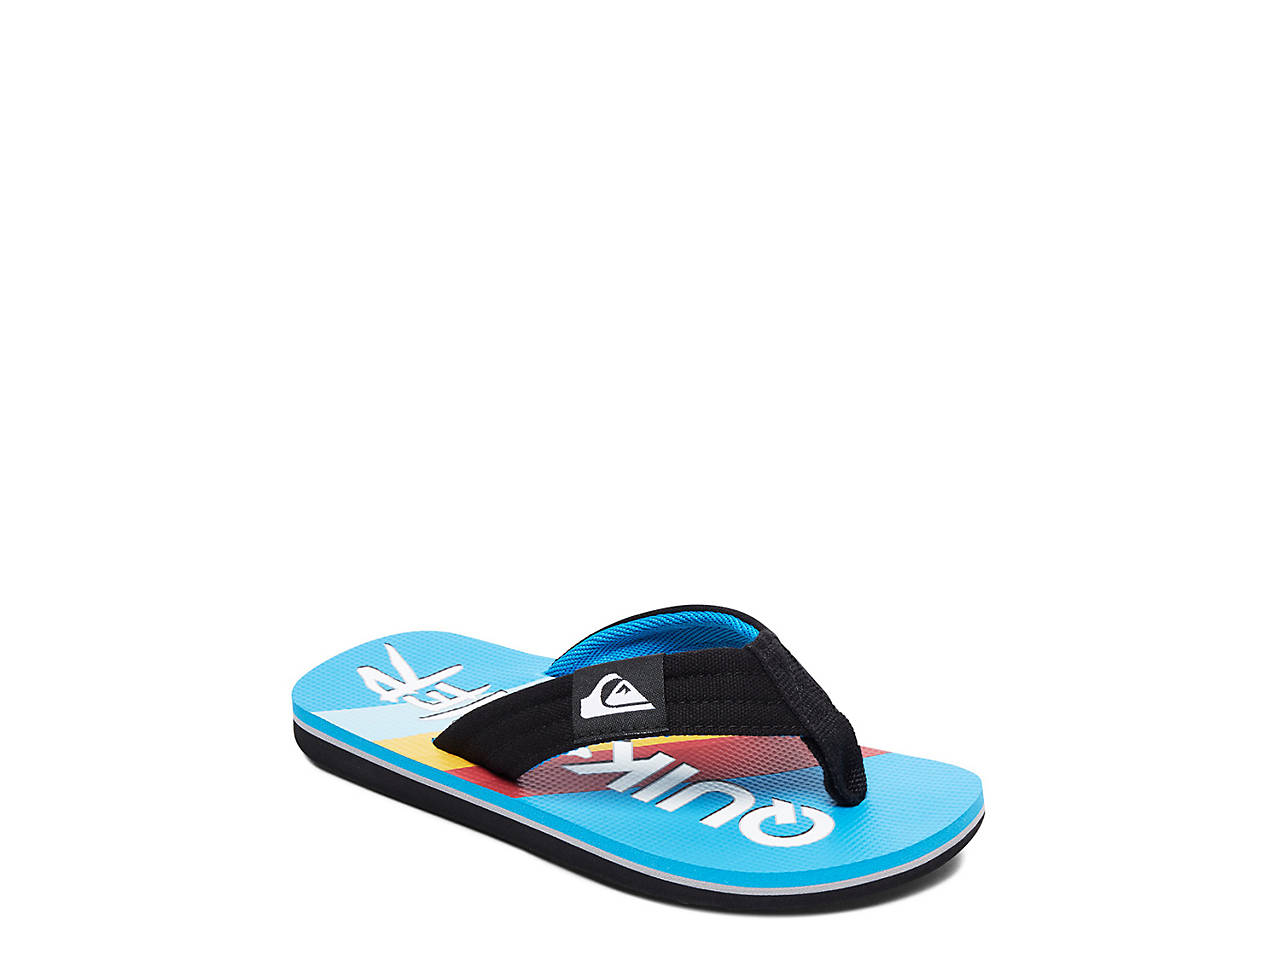 2d2651259850 Quiksilver Molokai Layback Toddler   Youth Flip Flop Kids Shoes